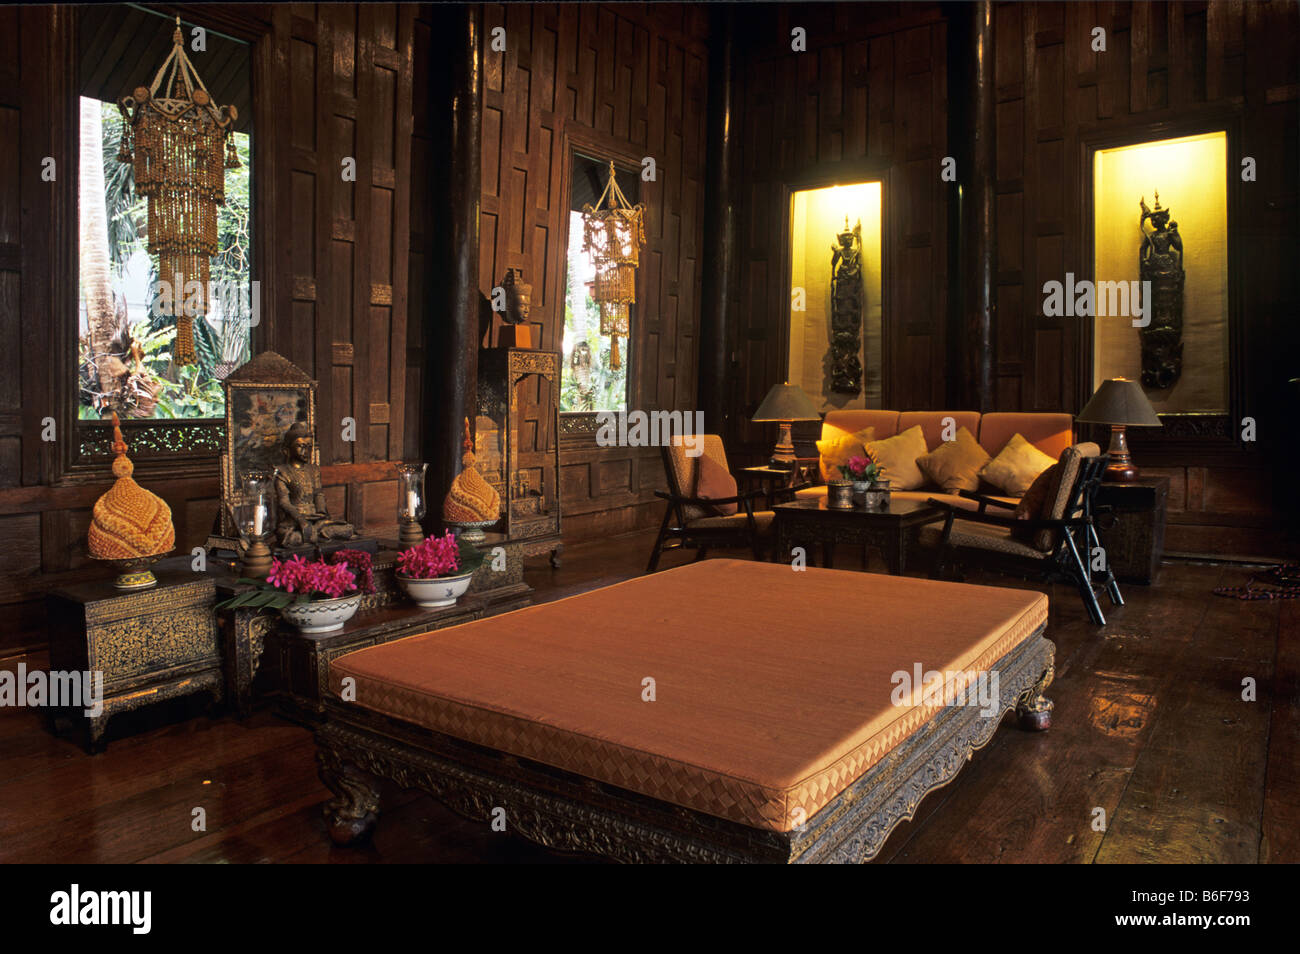 Thai Wohnzimmer Interior Jim Thompson House Bangkok Stockfotos And Interior